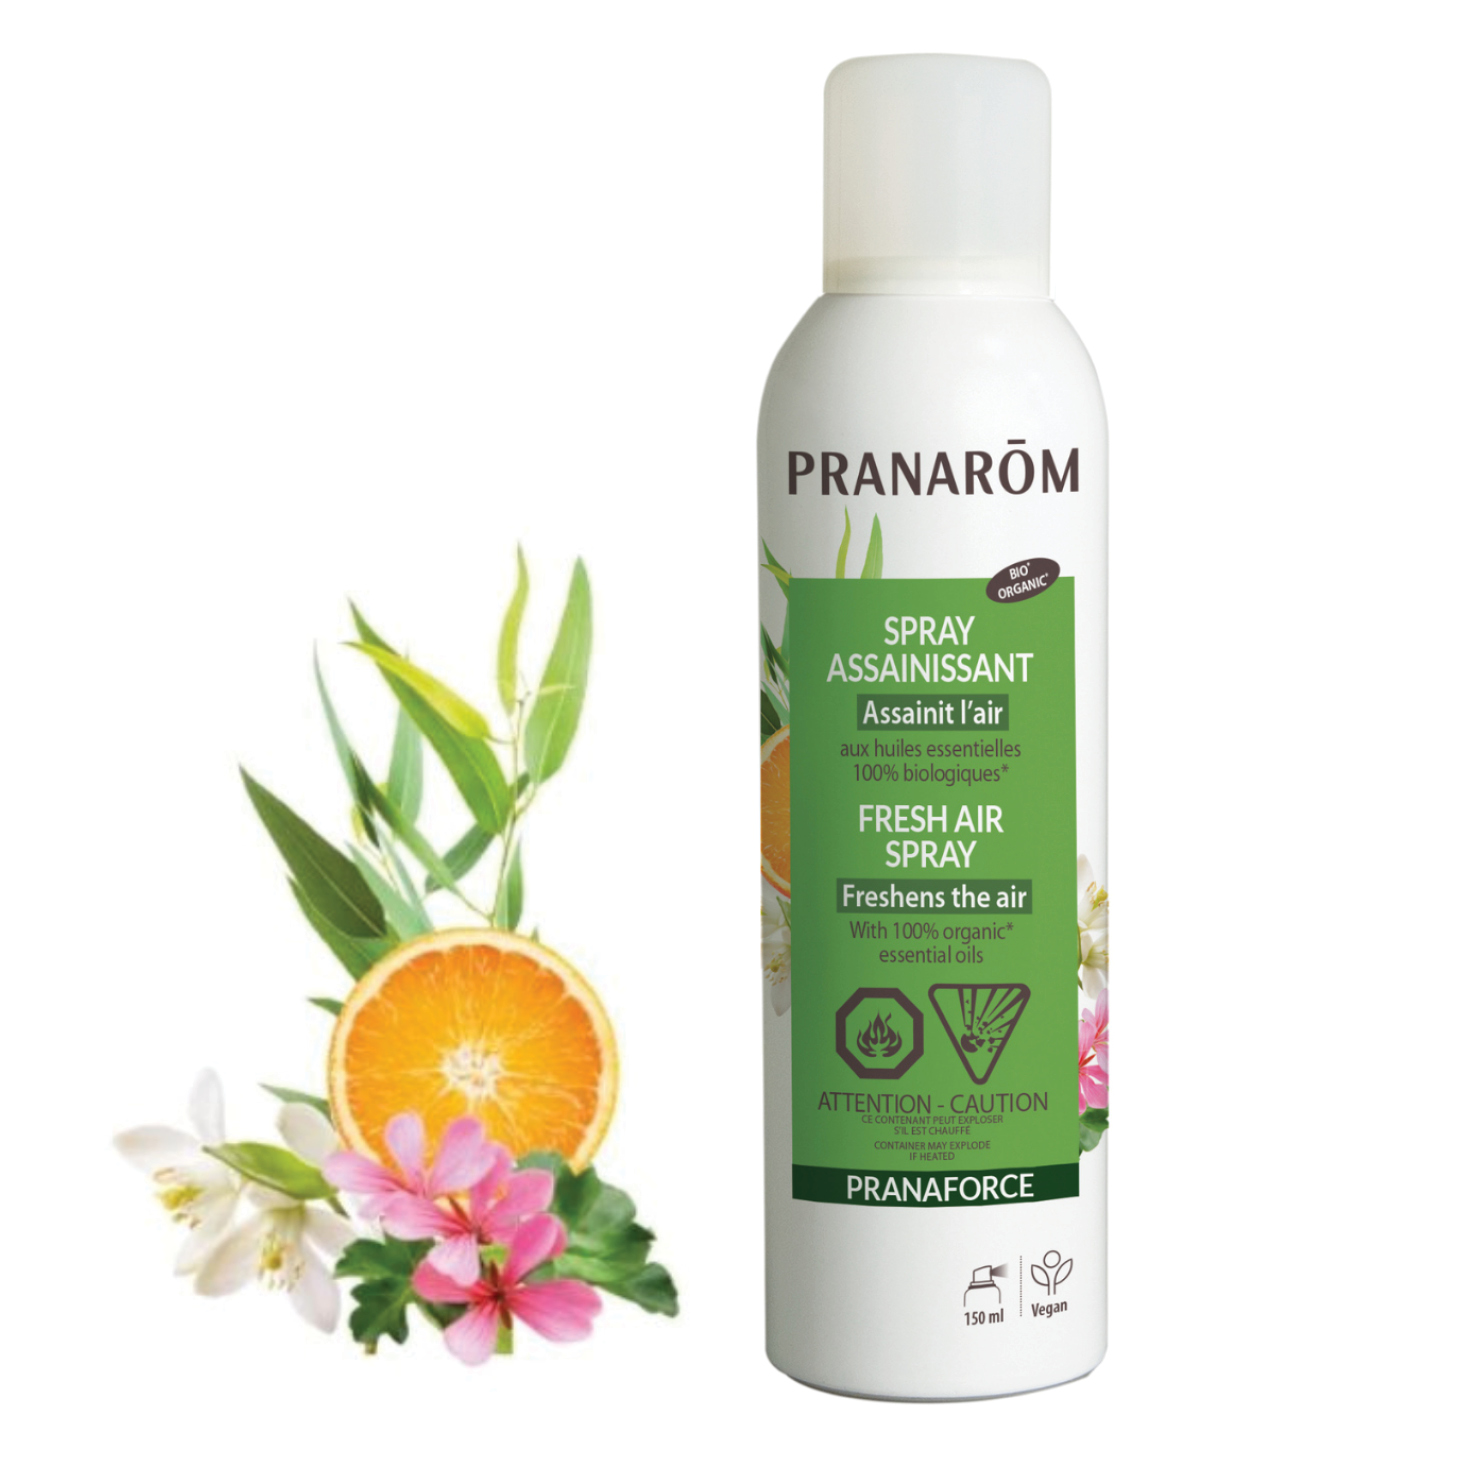 pranarom fresh air spray boyds alternative health